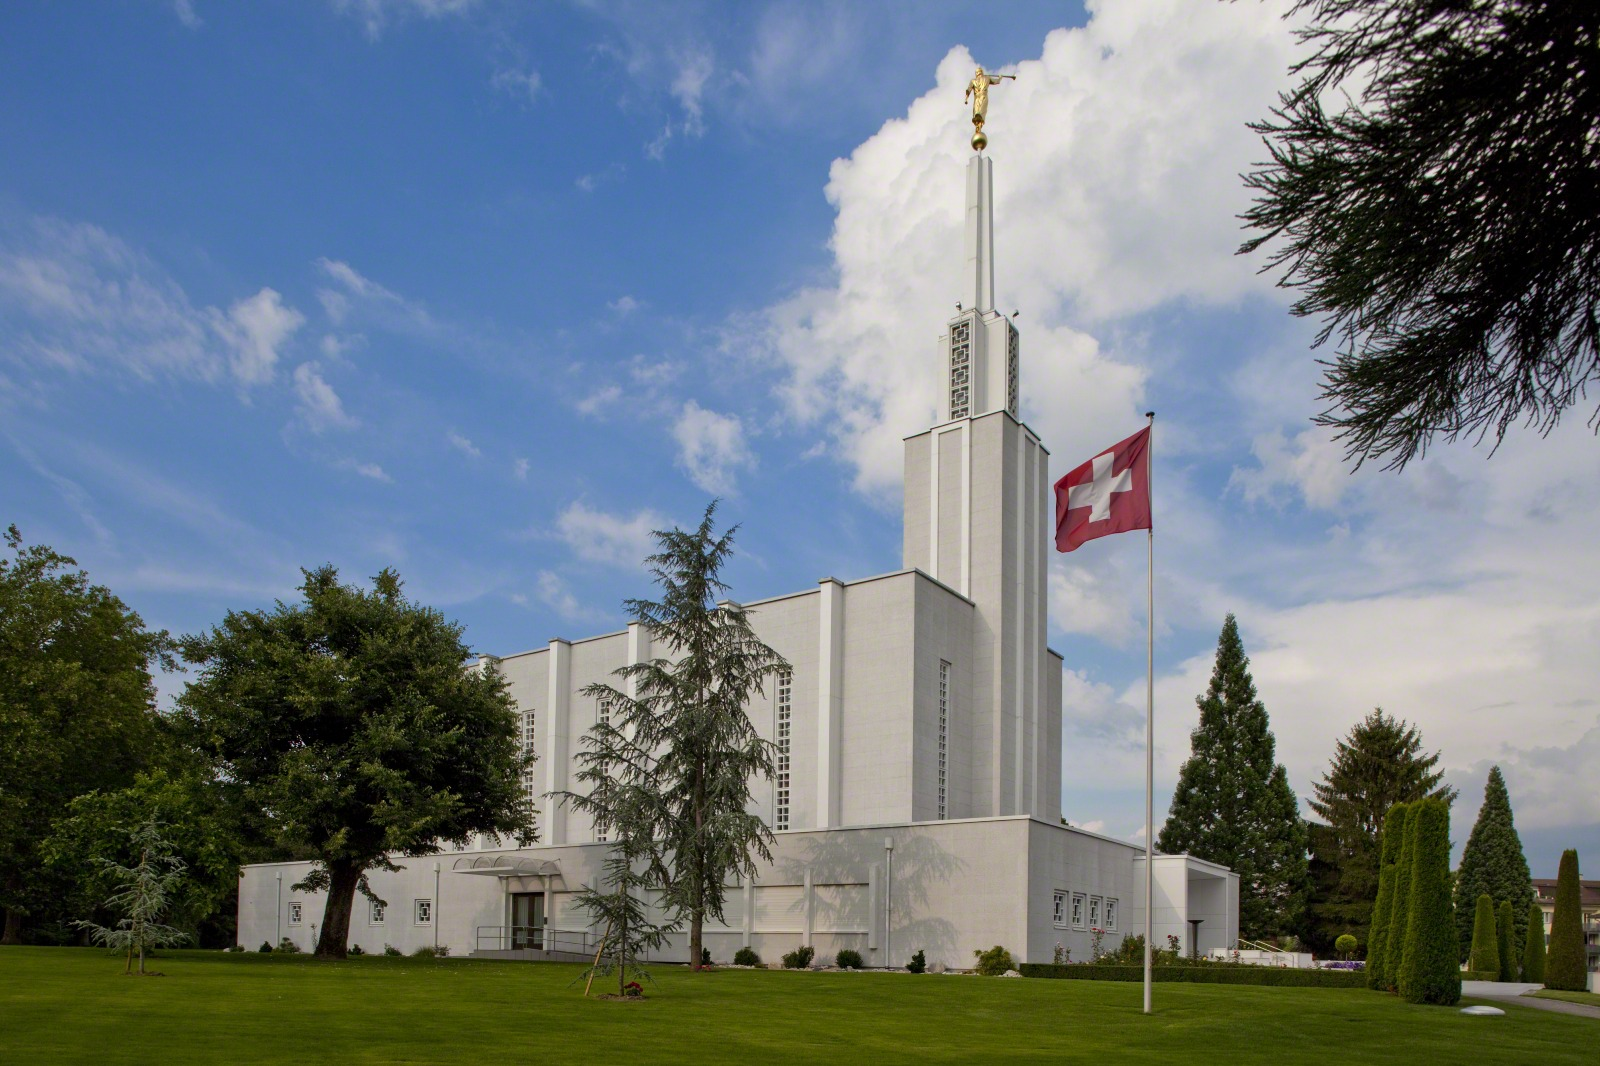 The Bern Switzerland Temple, the first in Europe, was dedicated in 1955 and remodeled in 1992.